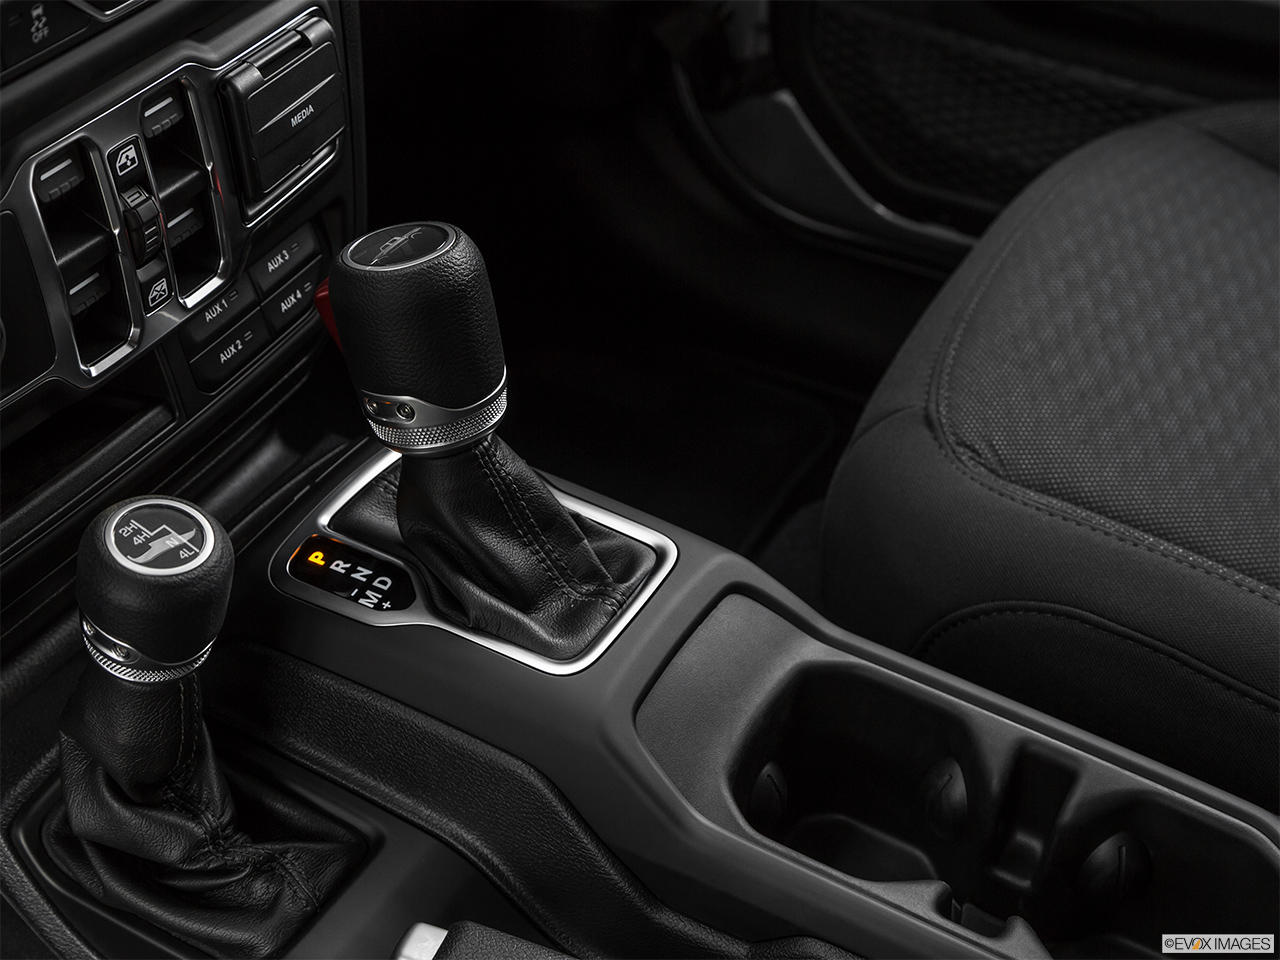 2020 Jeep Gladiator Sport S Gear shifter/center console.